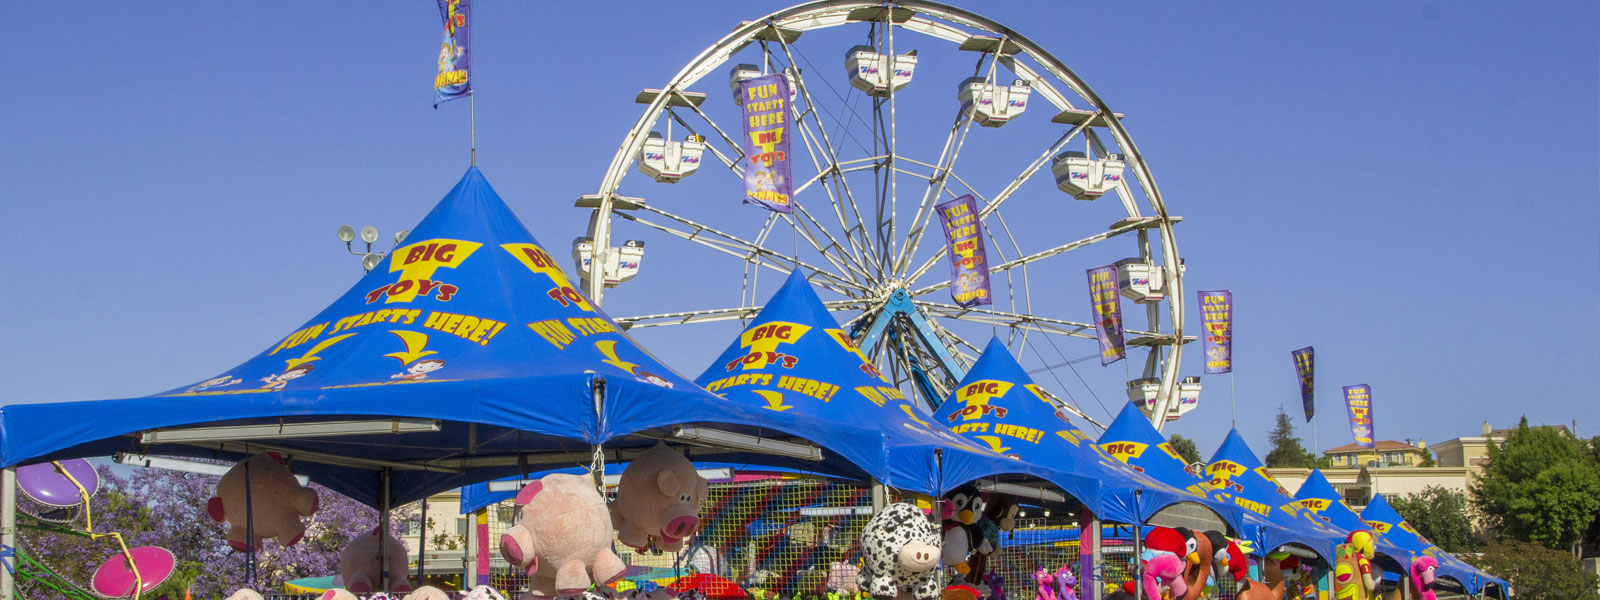 Carnival Midway Attractions (Orange, California)